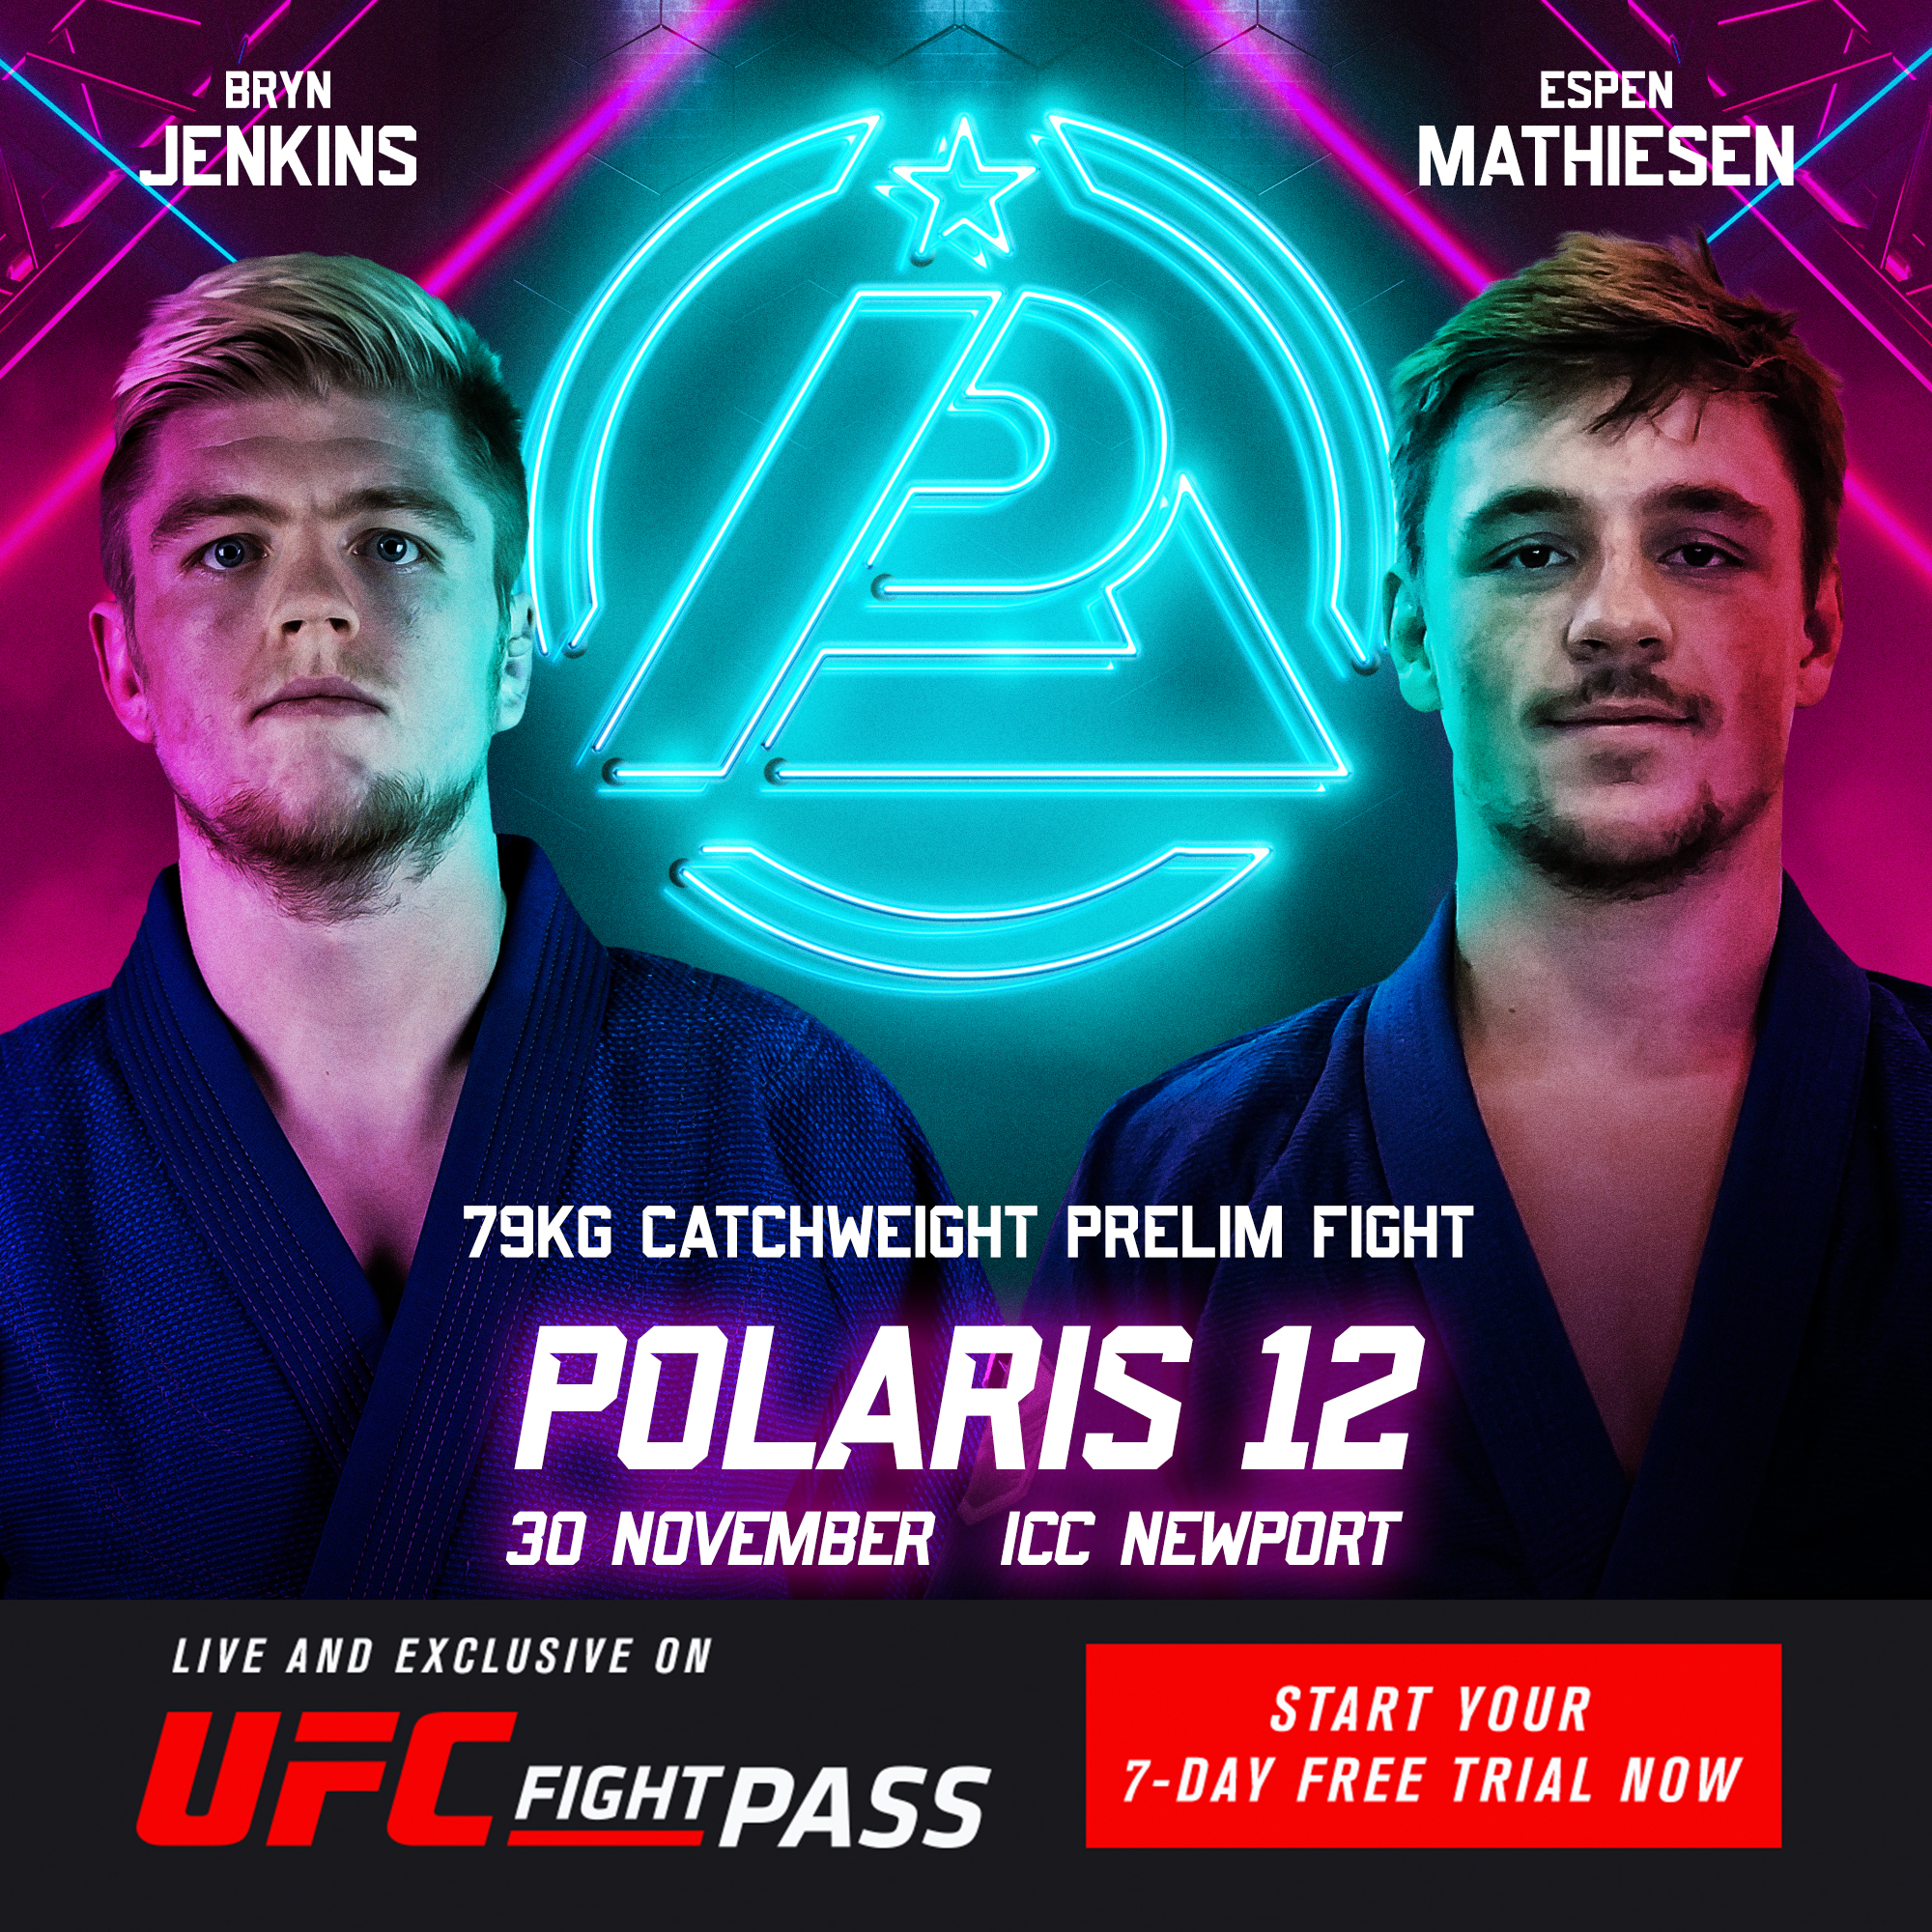 Polaris 12 - Bryn Jenkins VS Espen Mathiesen